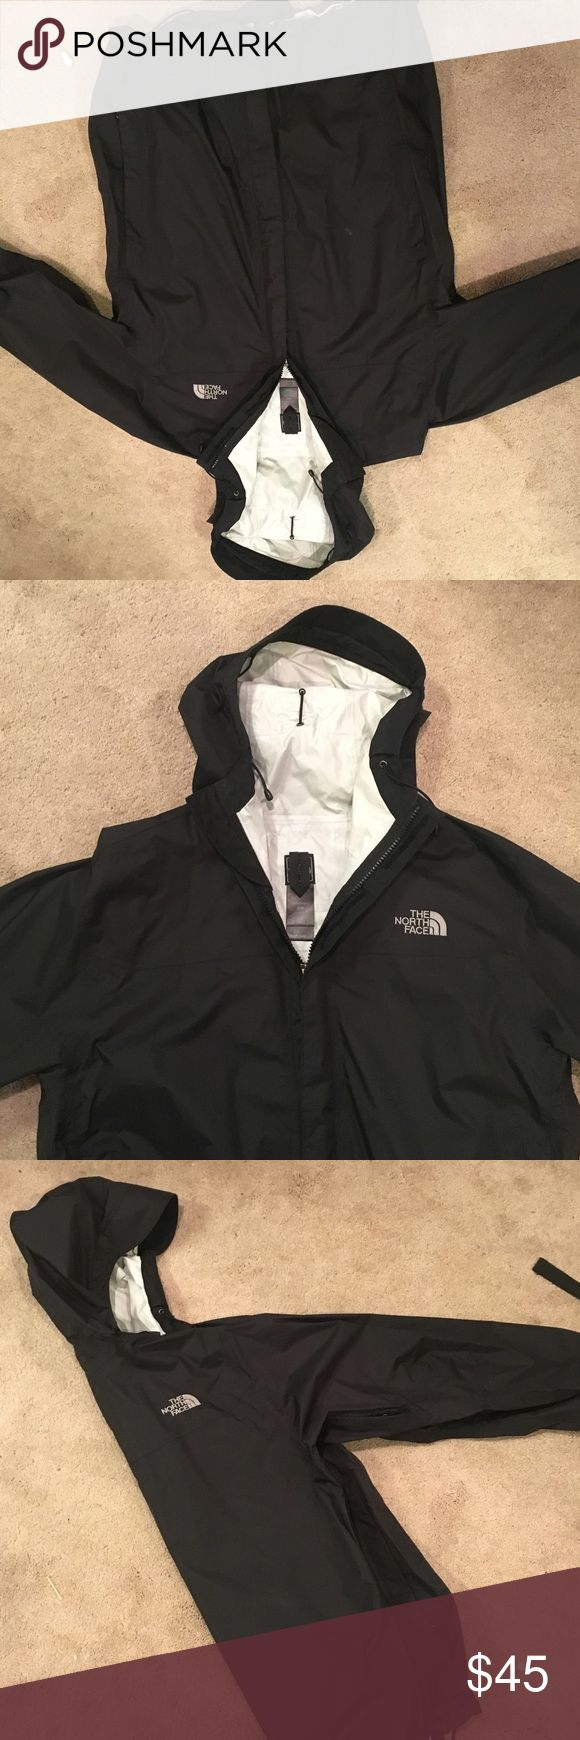 Men's north face windbreaker My boyfriend got this jacket and took the tags off, but he didn't like the way it fit him so he never wore it - it was a bit baggy. Perfect condition and only worn a few times The North Face Jackets & Coats